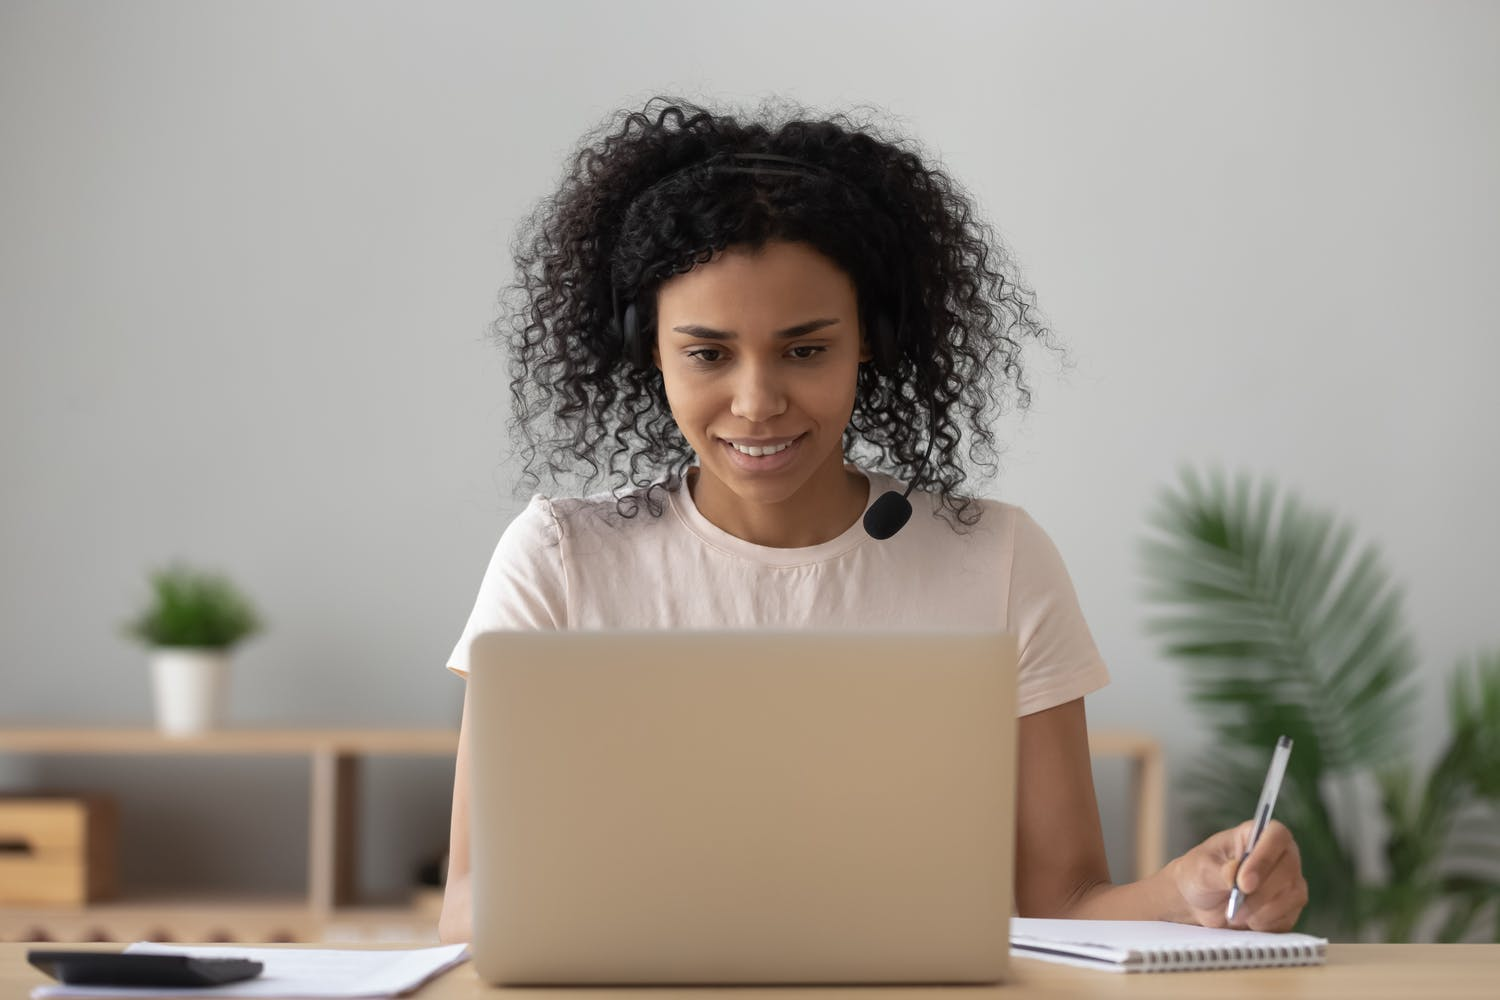 Decorative: Student studying at her own pace on computer